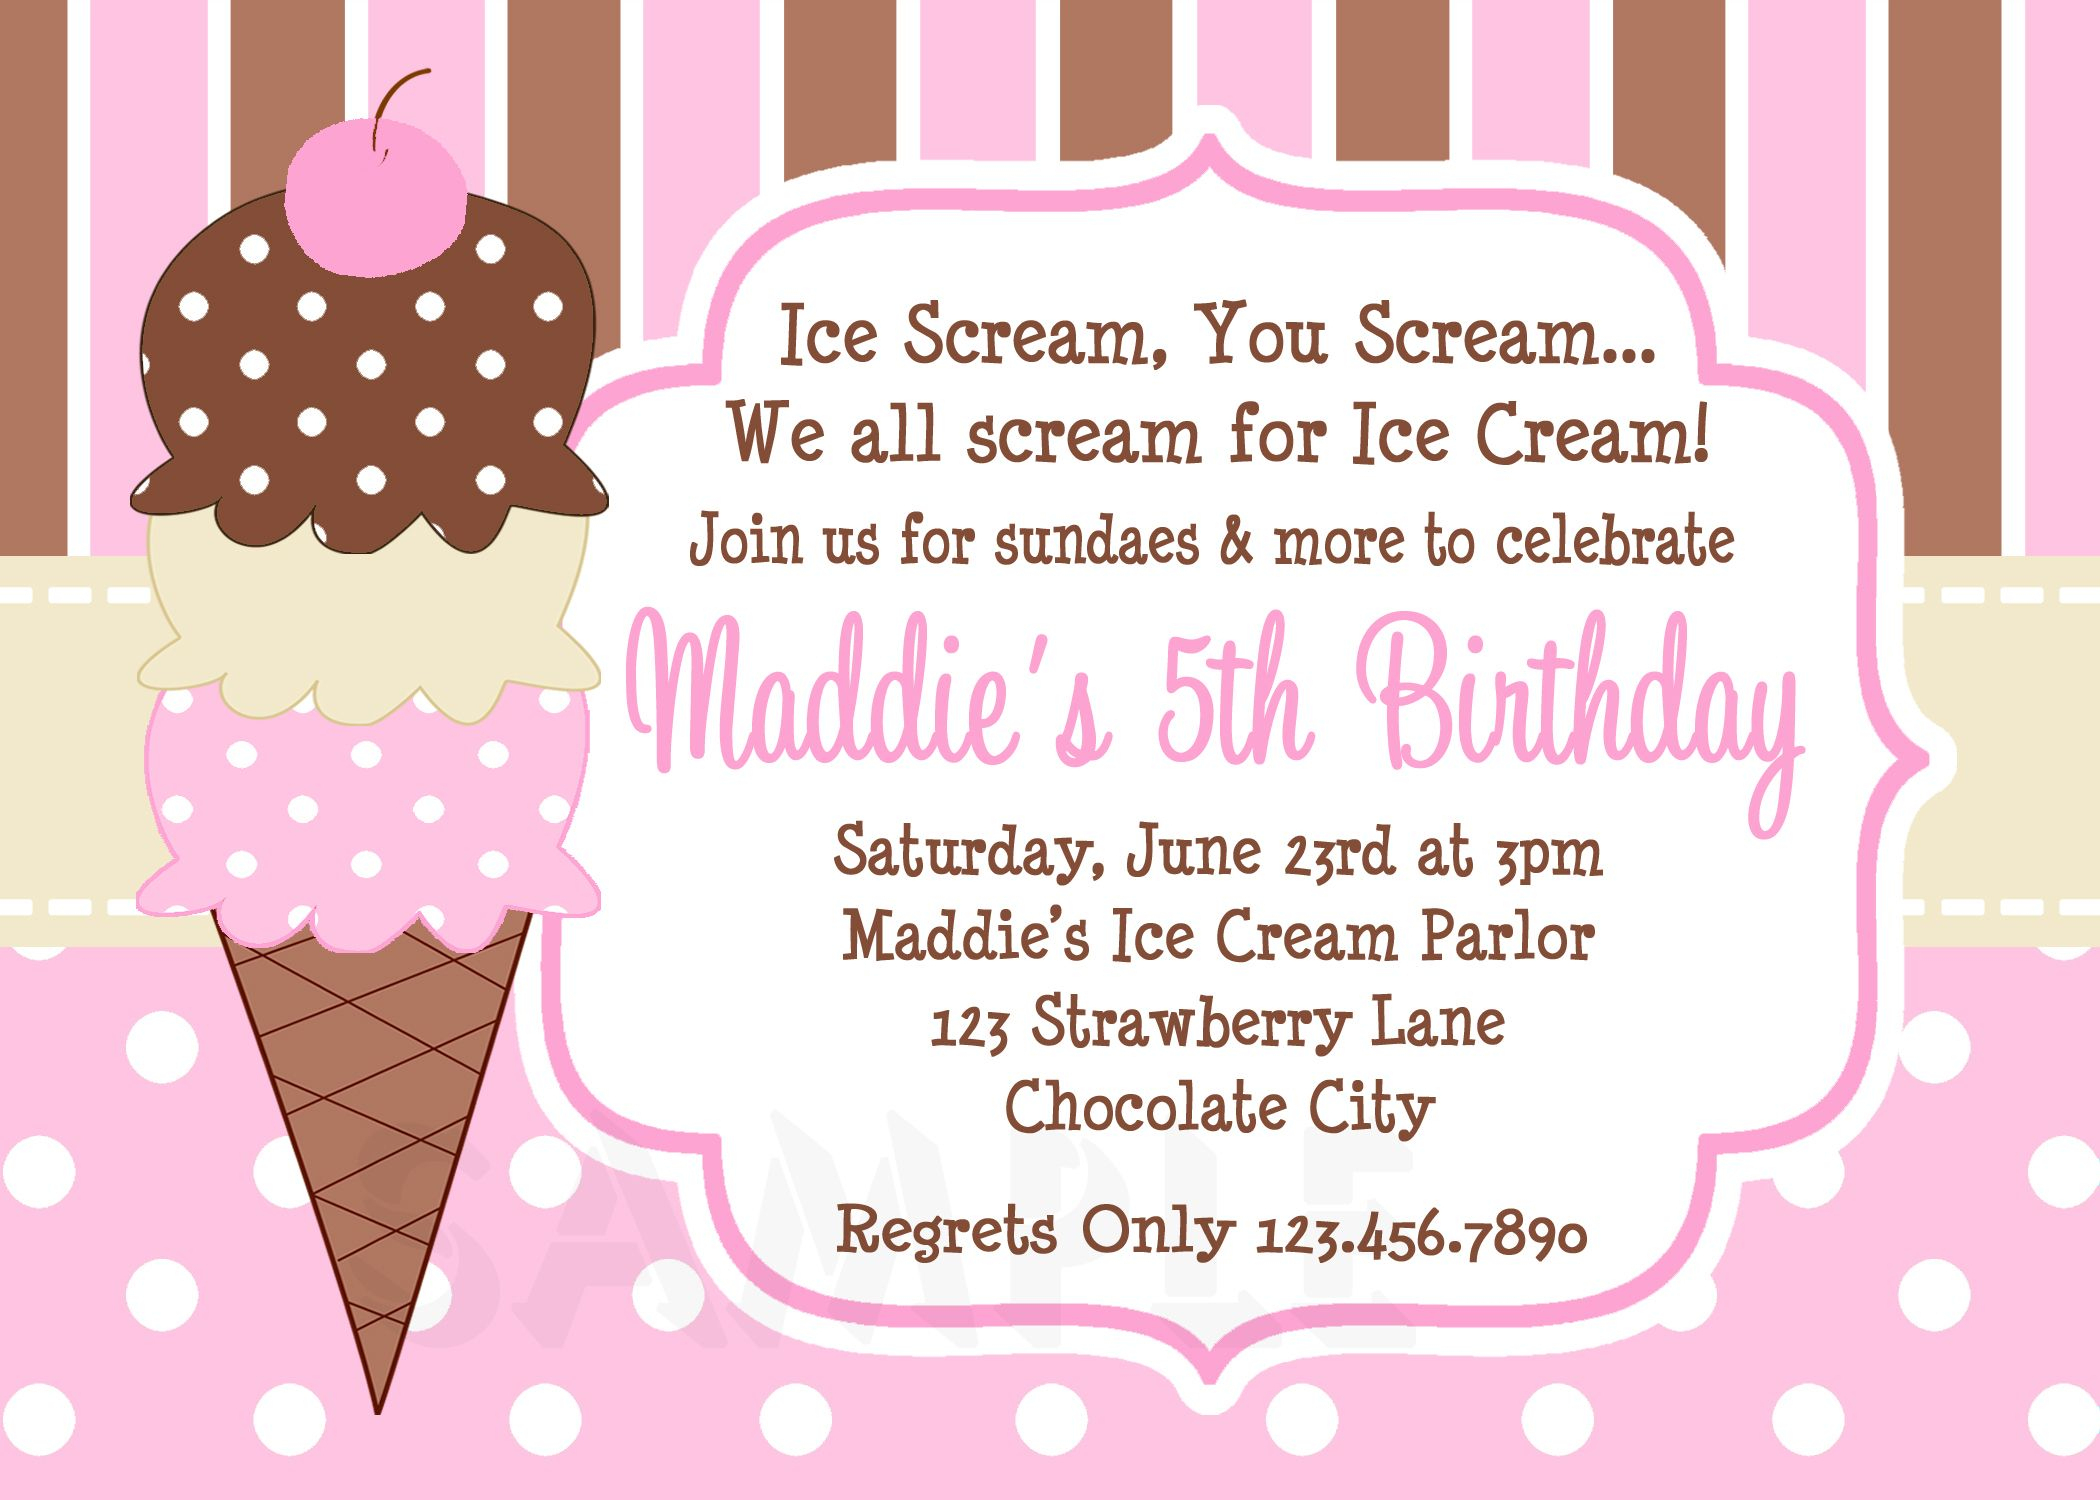 Cool Free Template Ice Cream Birthday Party Invitations   Bagvania - Ice Cream Party Invitations Printable Free